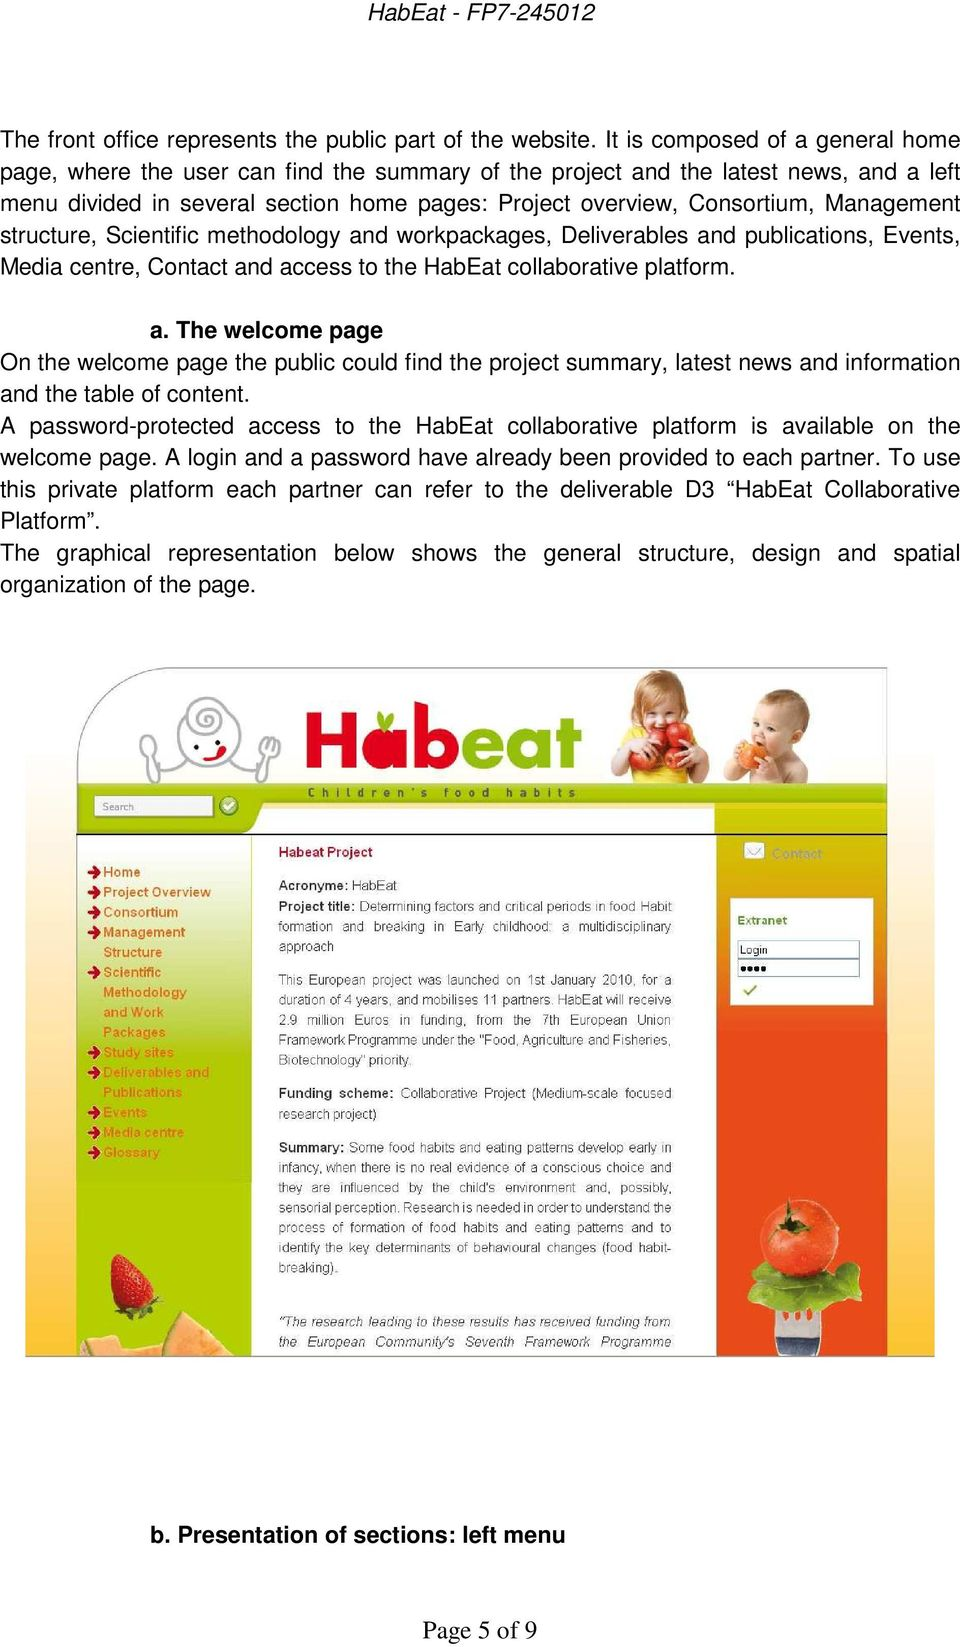 Management structure, Scientific methodology and workpackages, Deliverables and publications, Events, Media centre, Contact and access to the HabEat collaborative platform. a. The welcome page On the welcome page the public could find the project summary, latest news and information and the table of content.